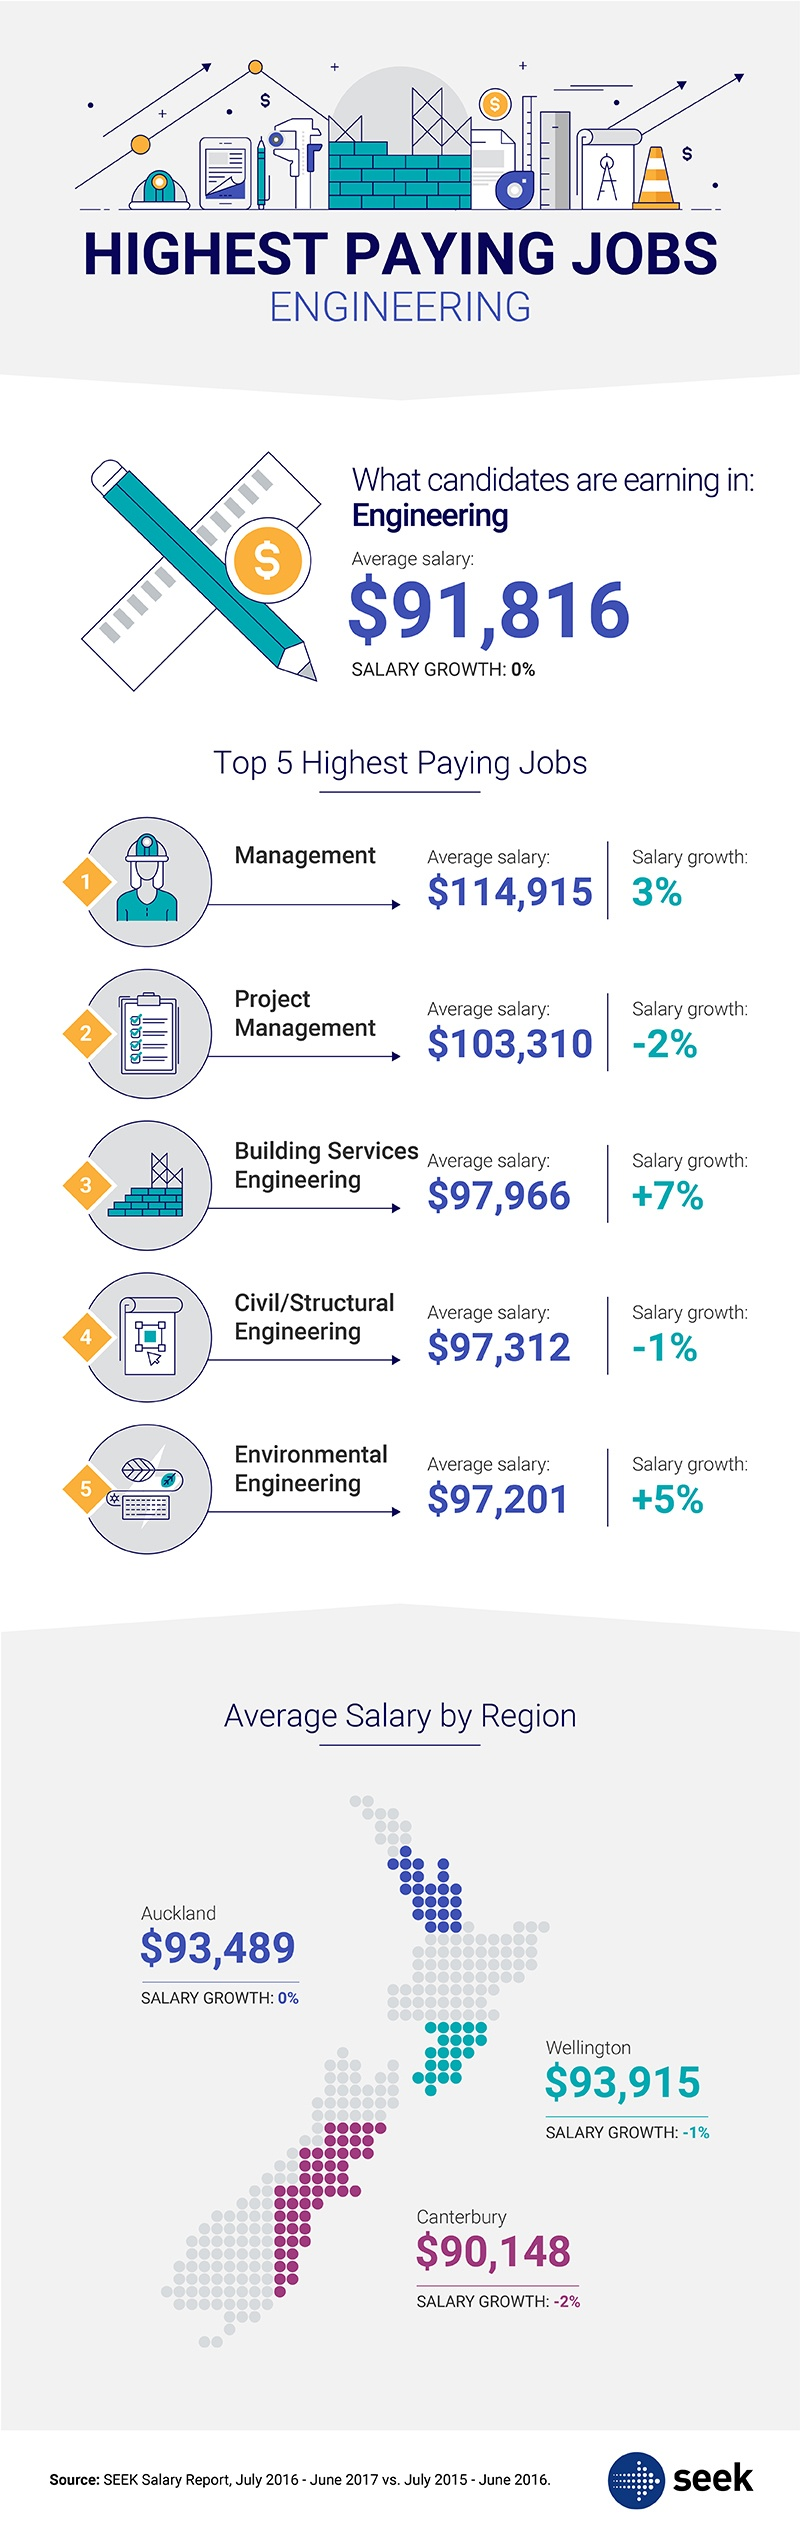 Highest Paying Jobs: Engineering